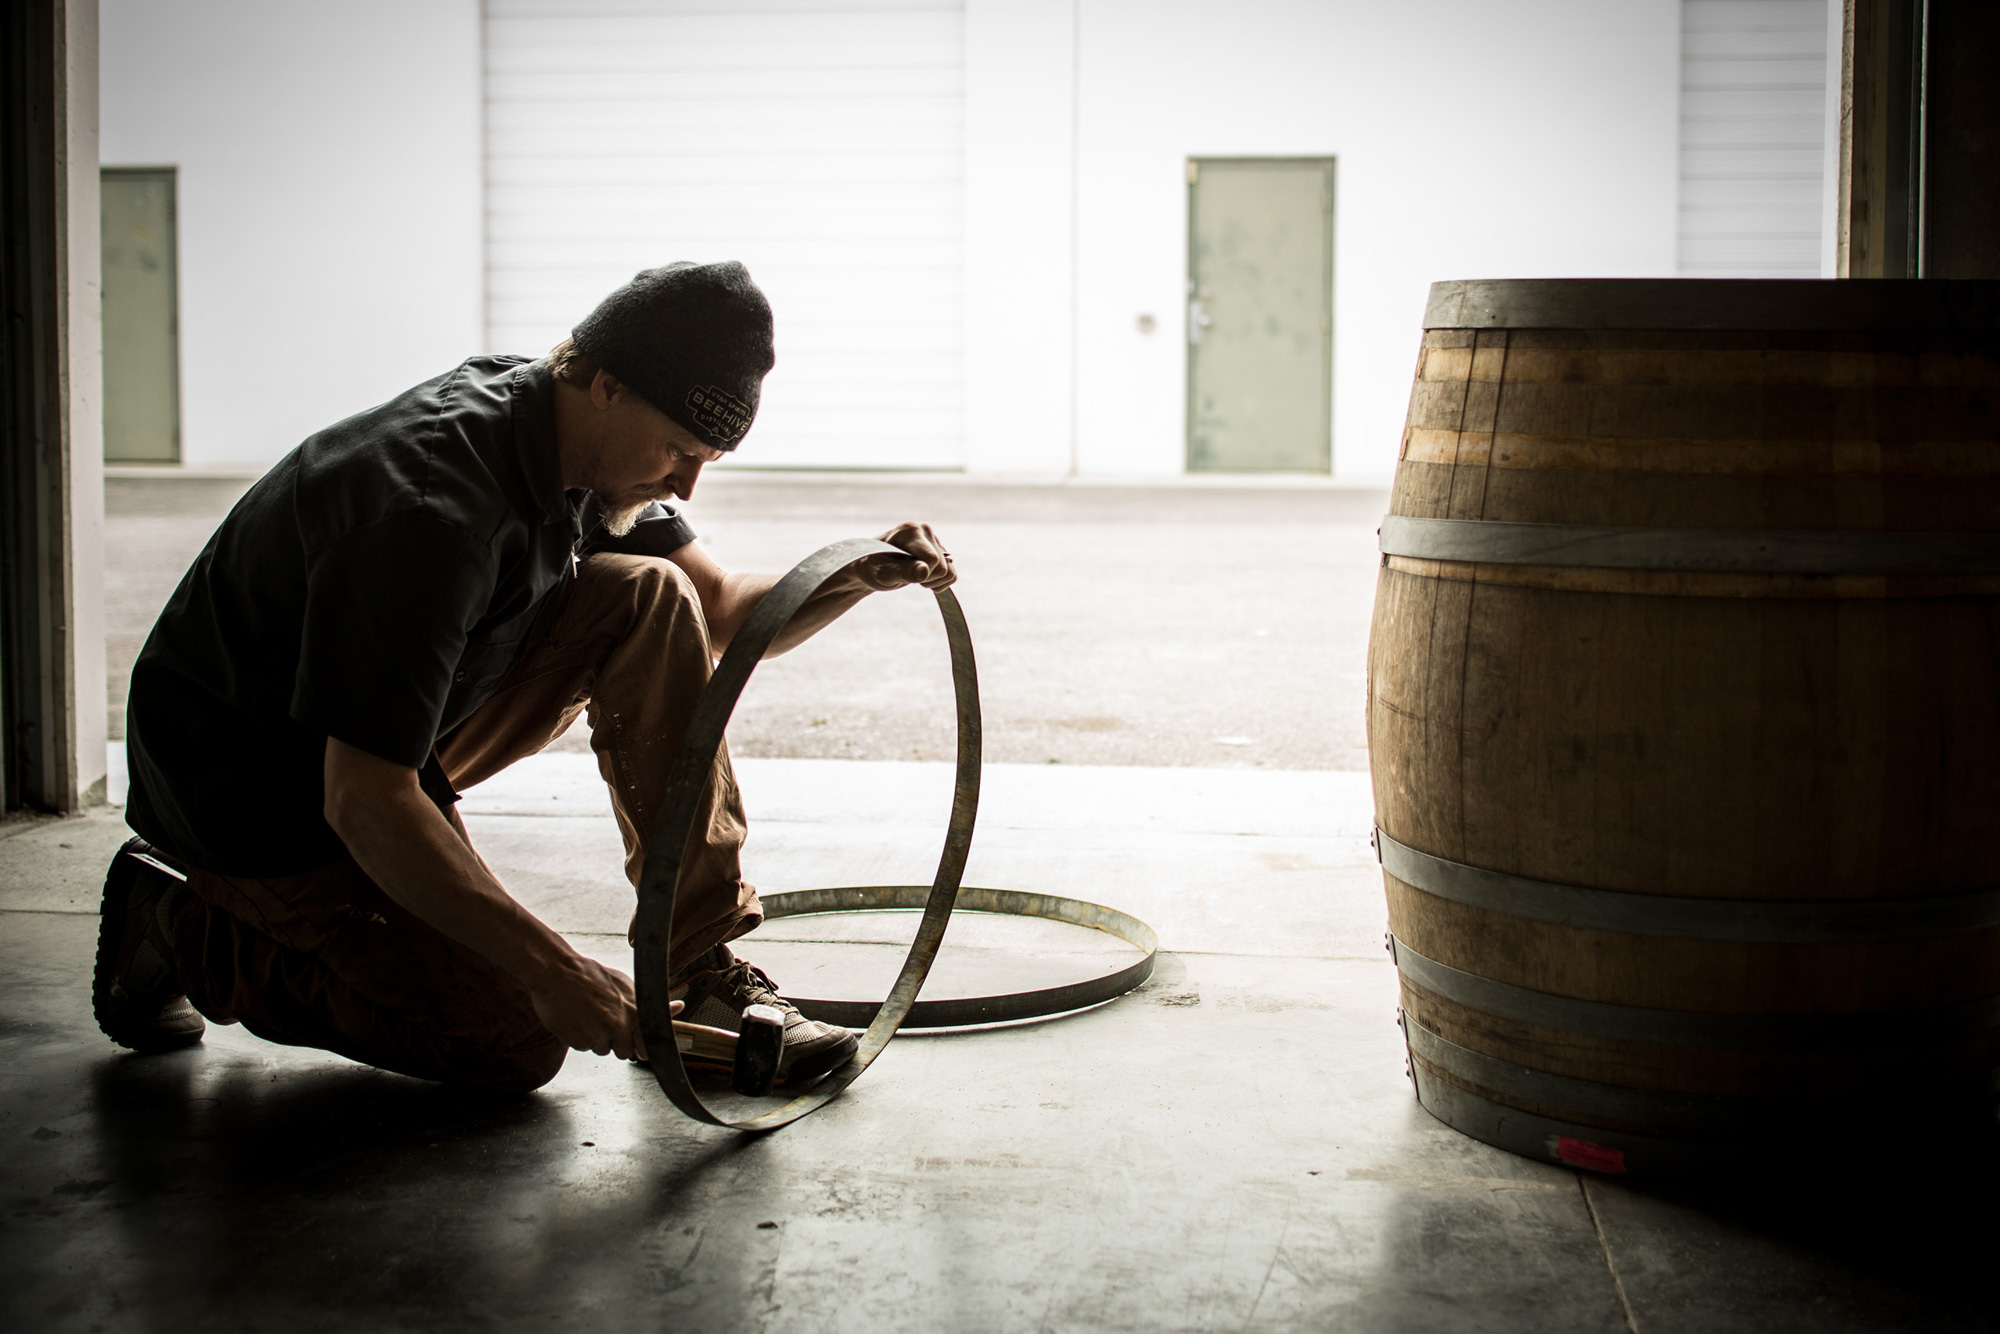 Beehive Distilling Small Batch Craft Gin Salt Lake City Utah 18